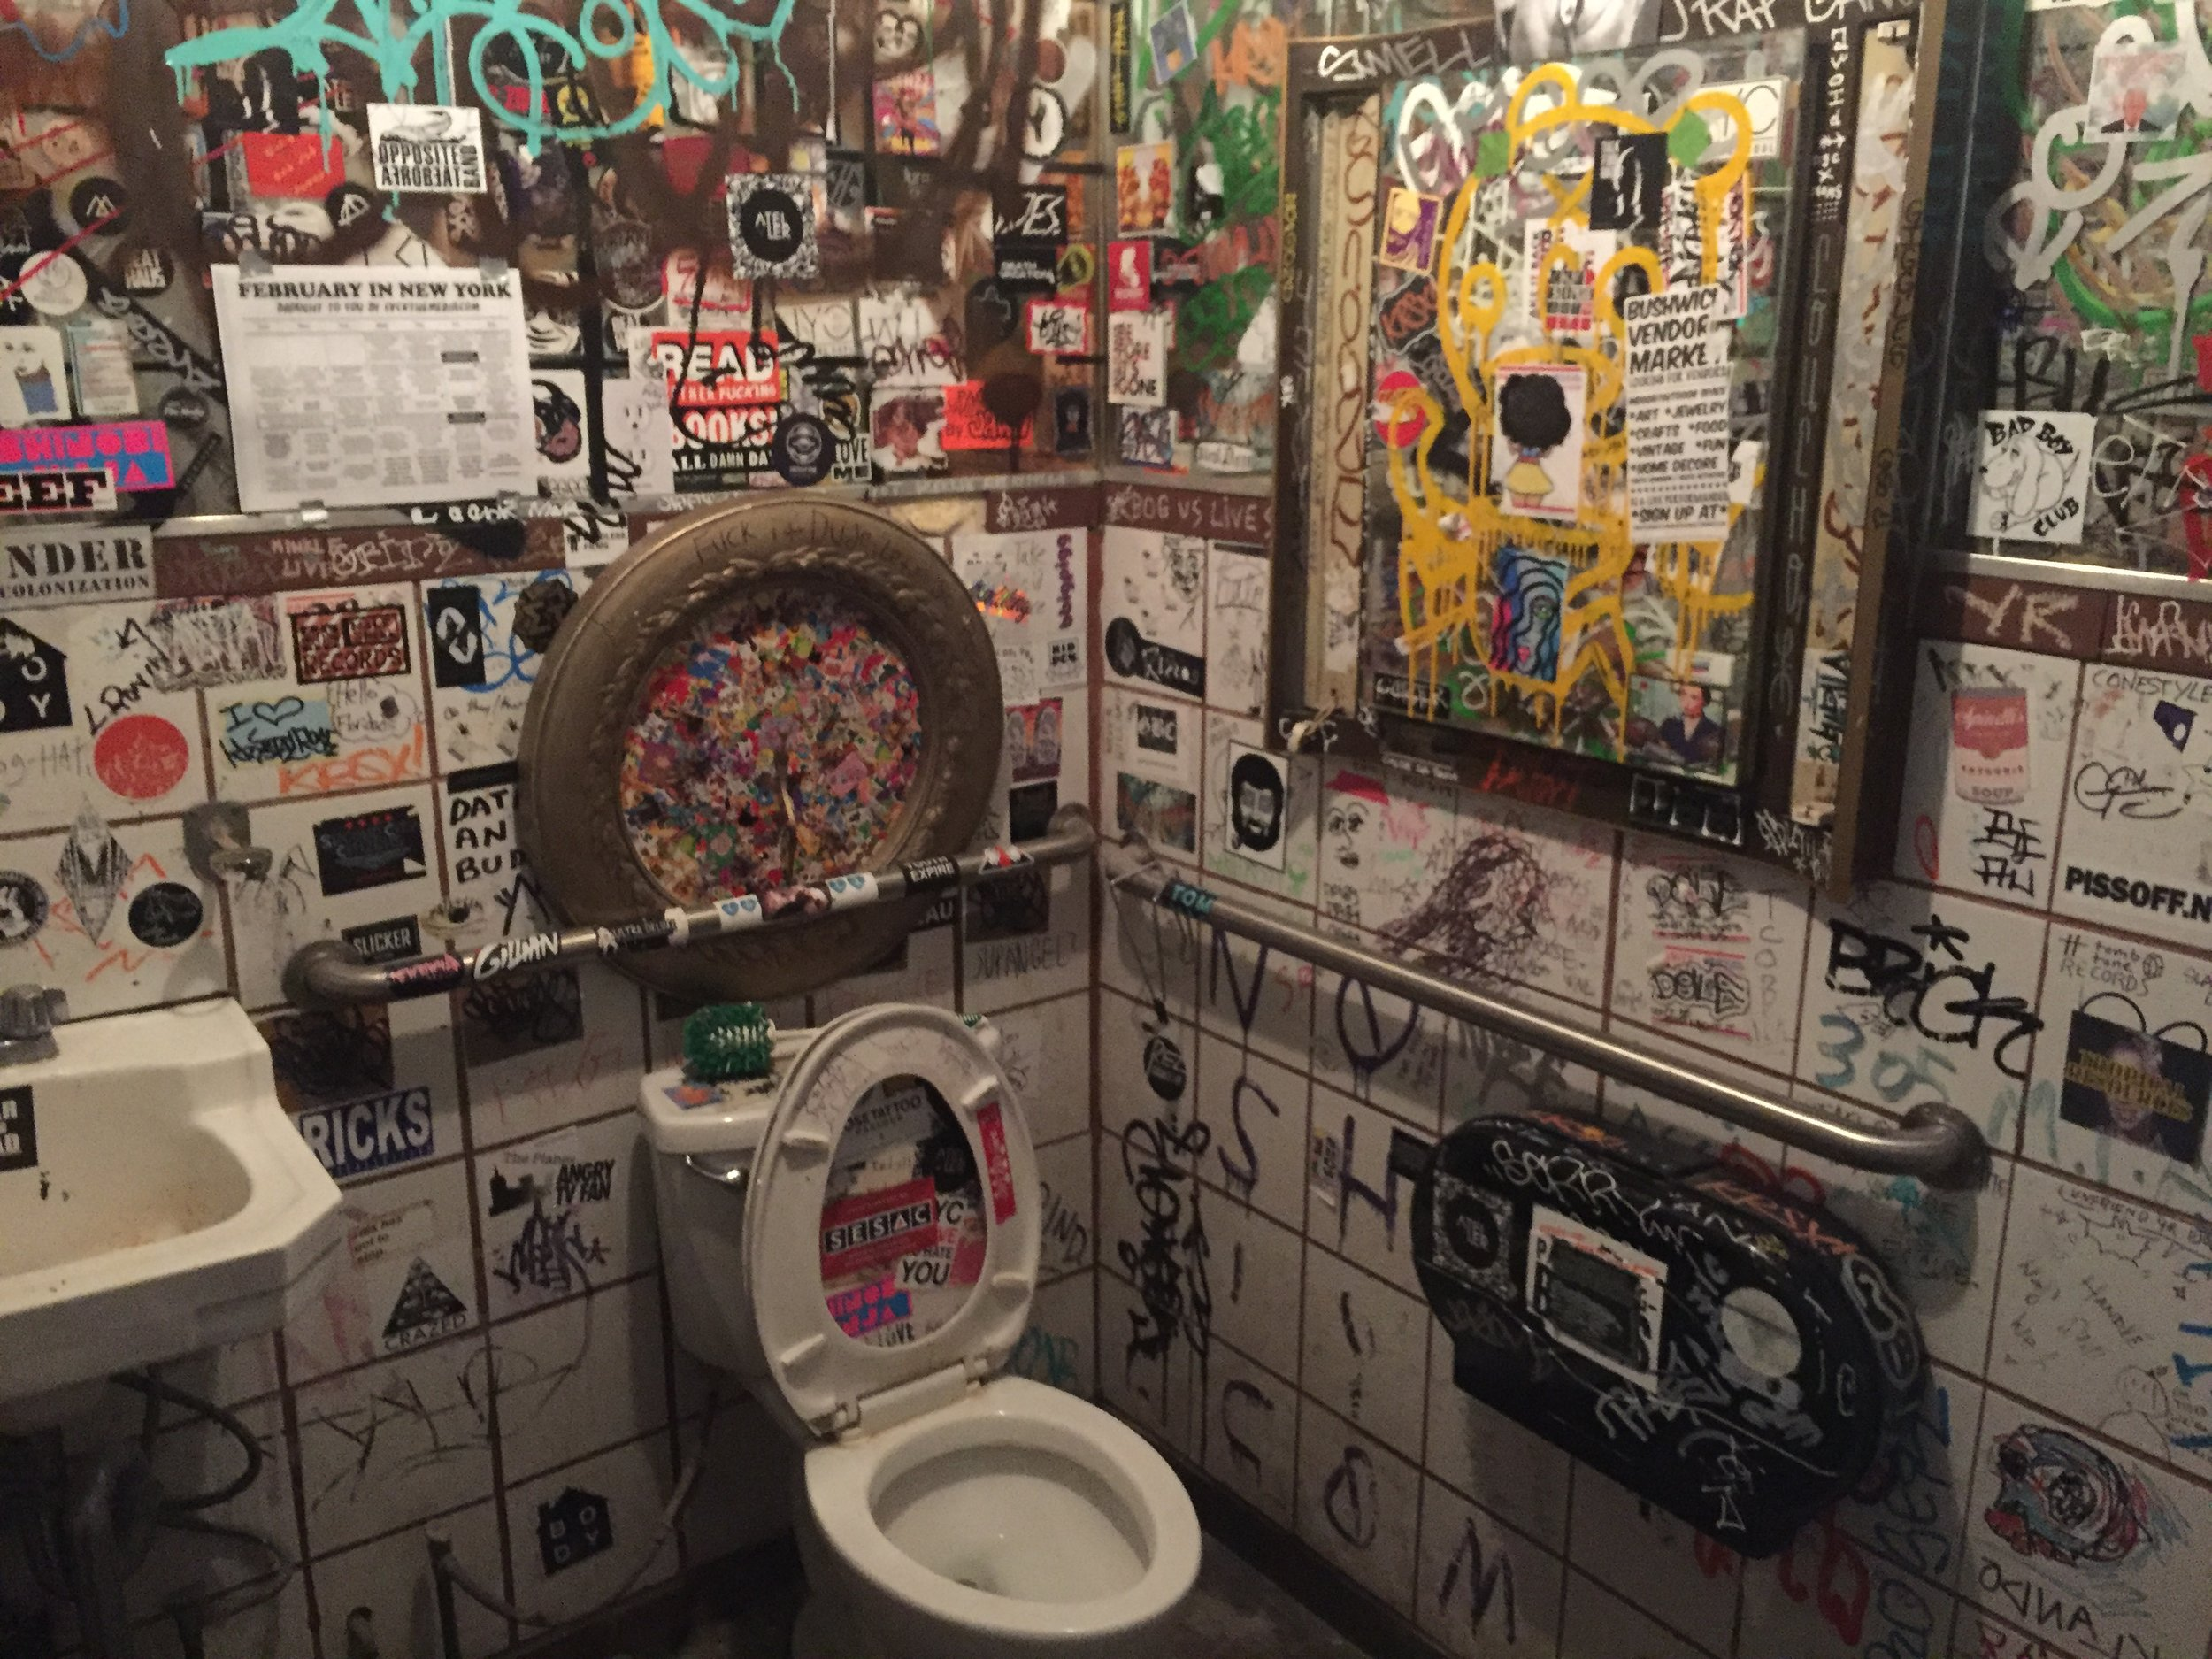 Love this restroom.